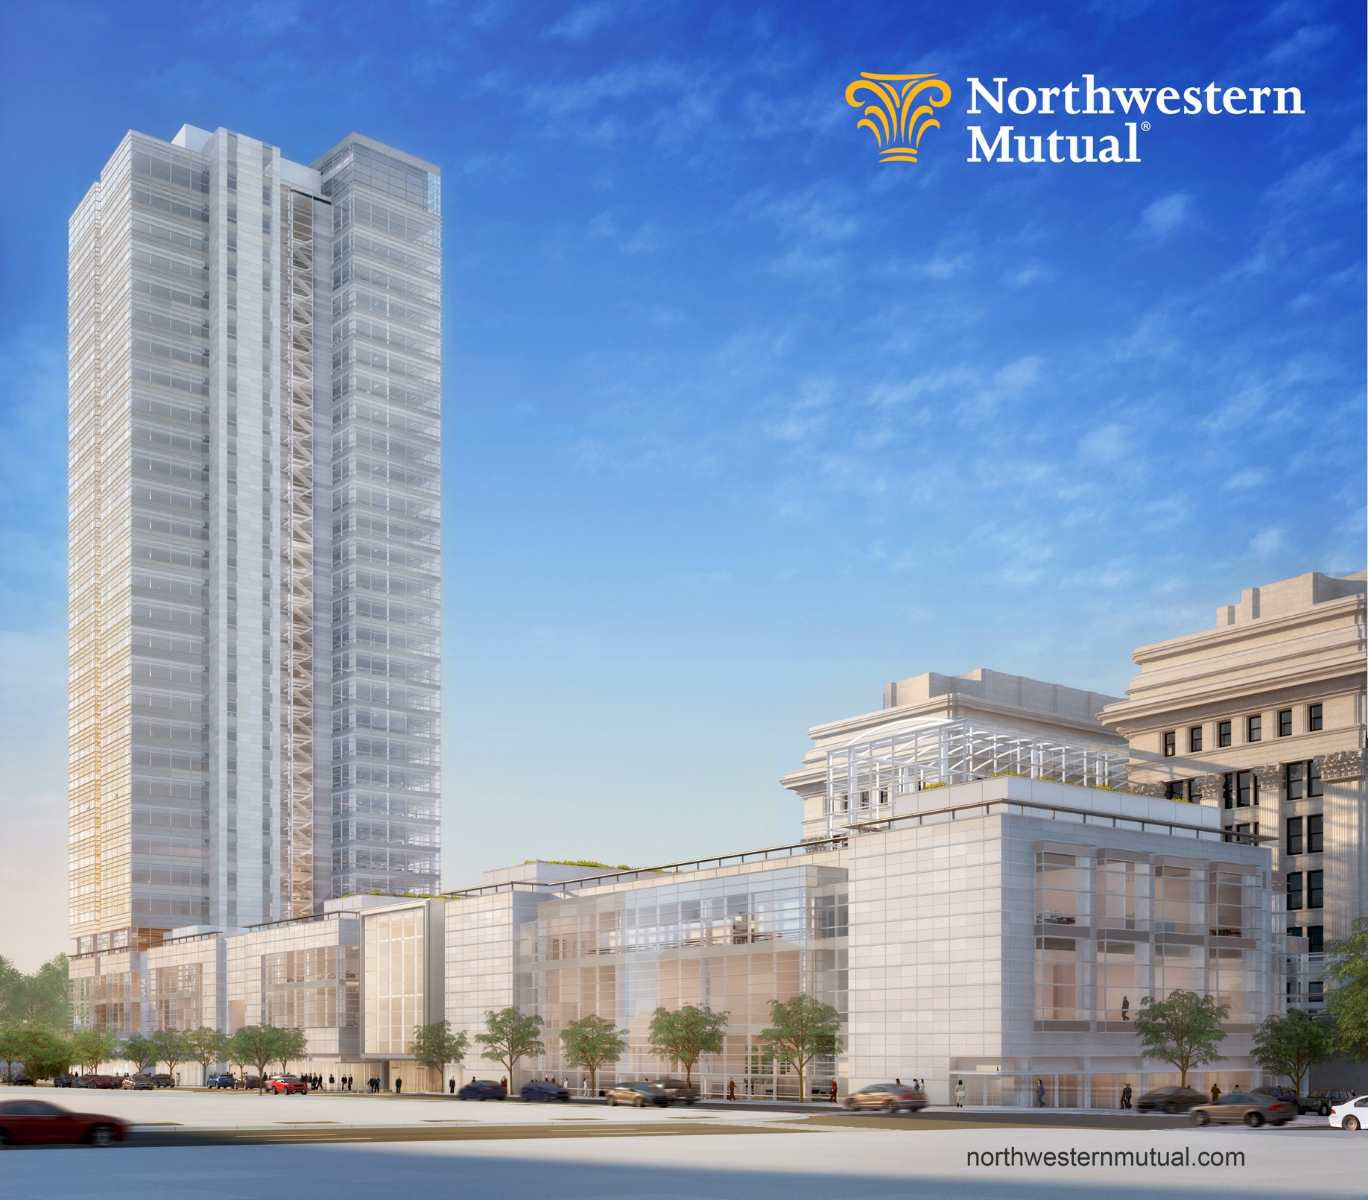 Northwestern mutual tower and commons creates more jobs for Northwestern industries